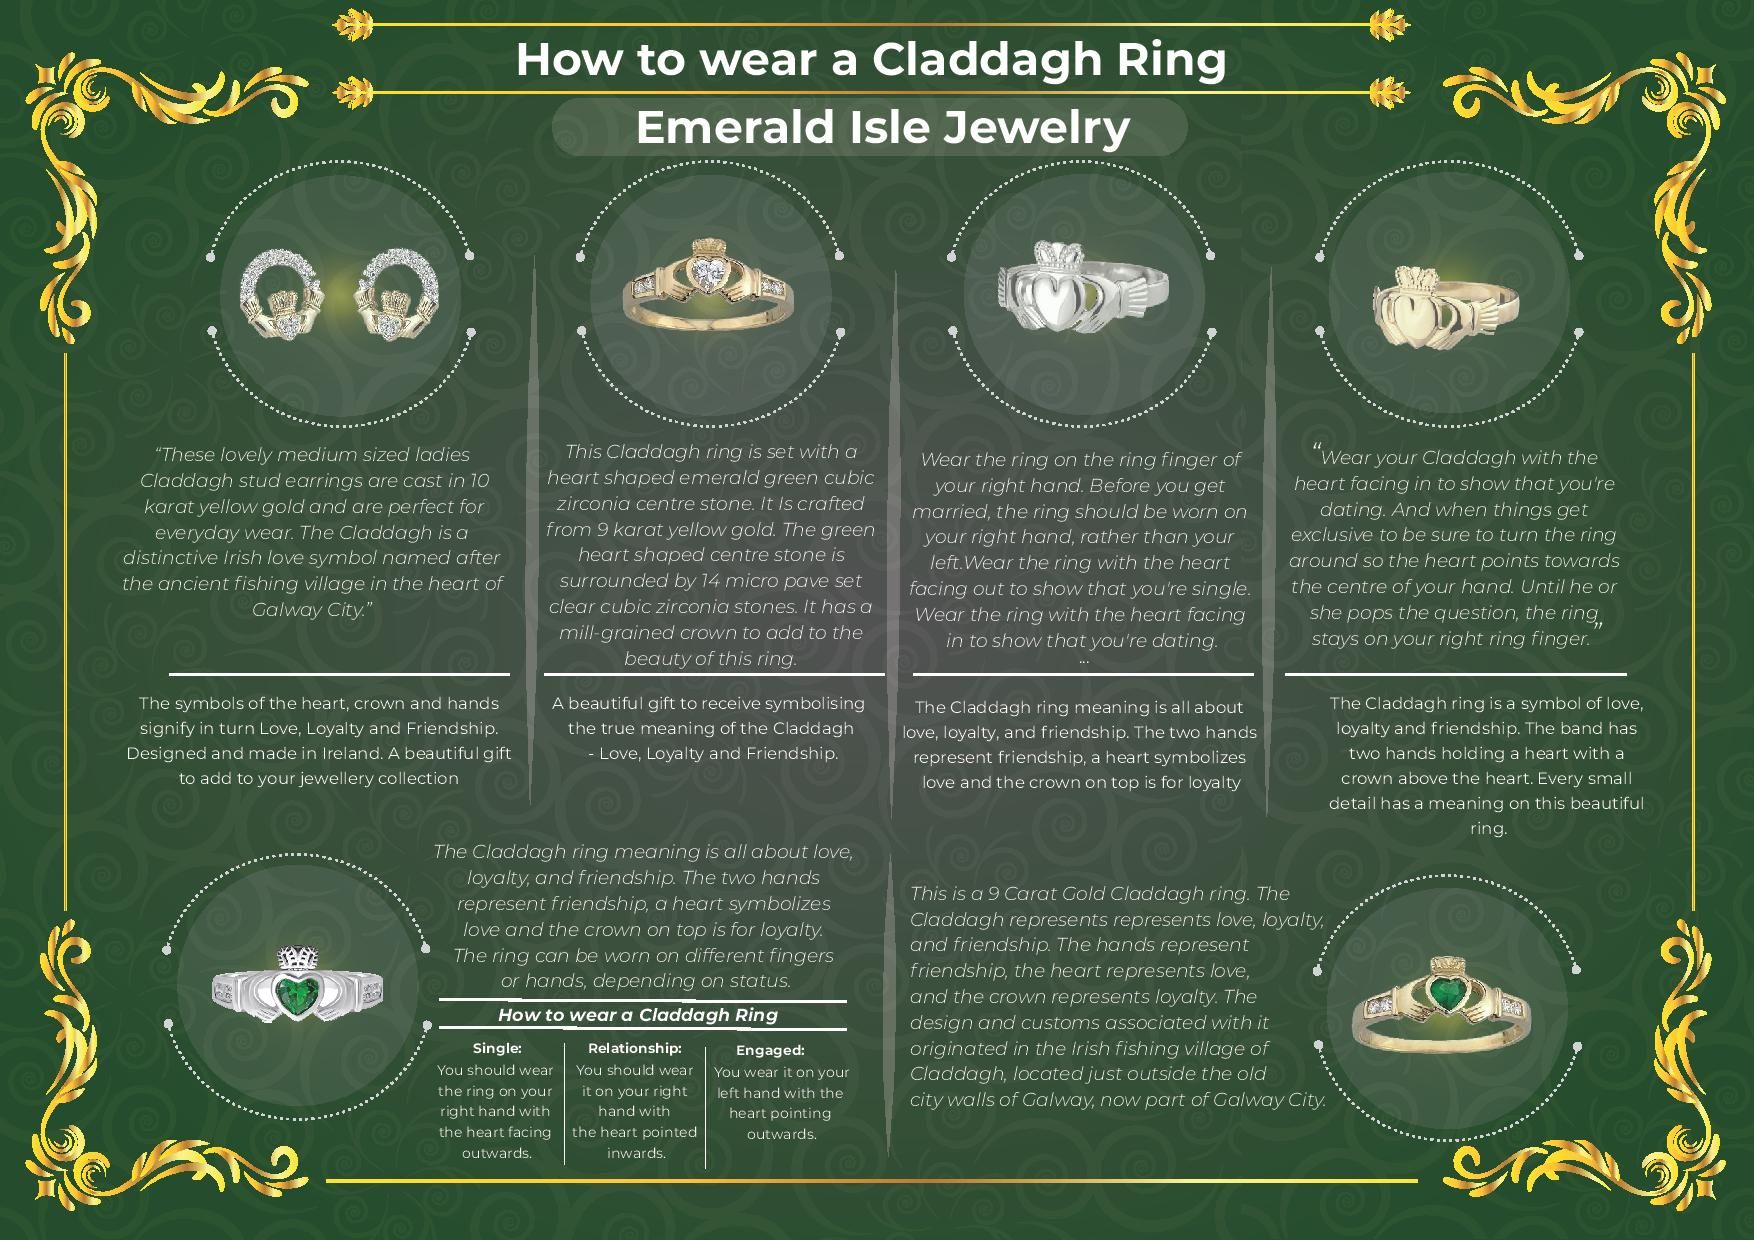 How to wear a claddagh ring claddagh rings rings irish